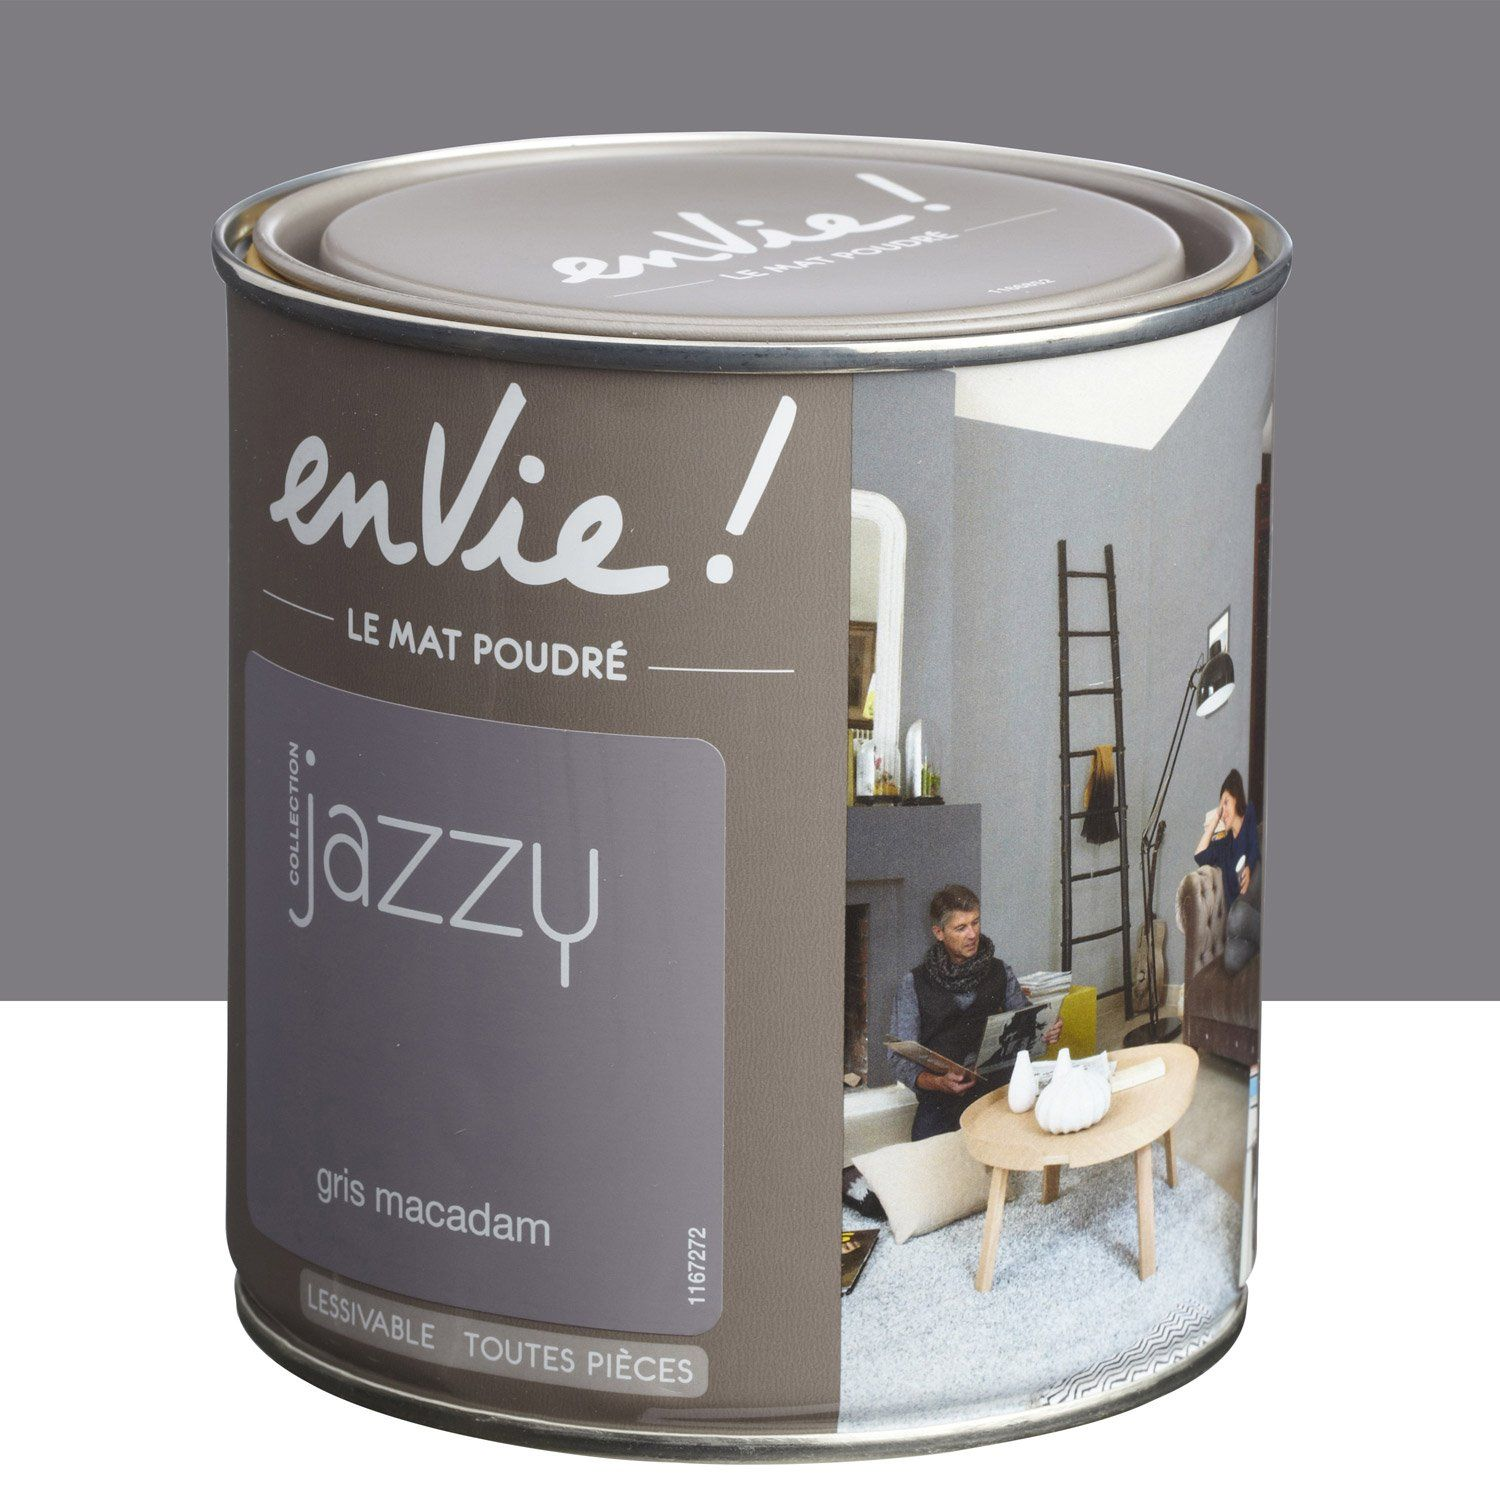 Peinture Multisupports Envie Collection Jazzy Luxens Gris Macadam